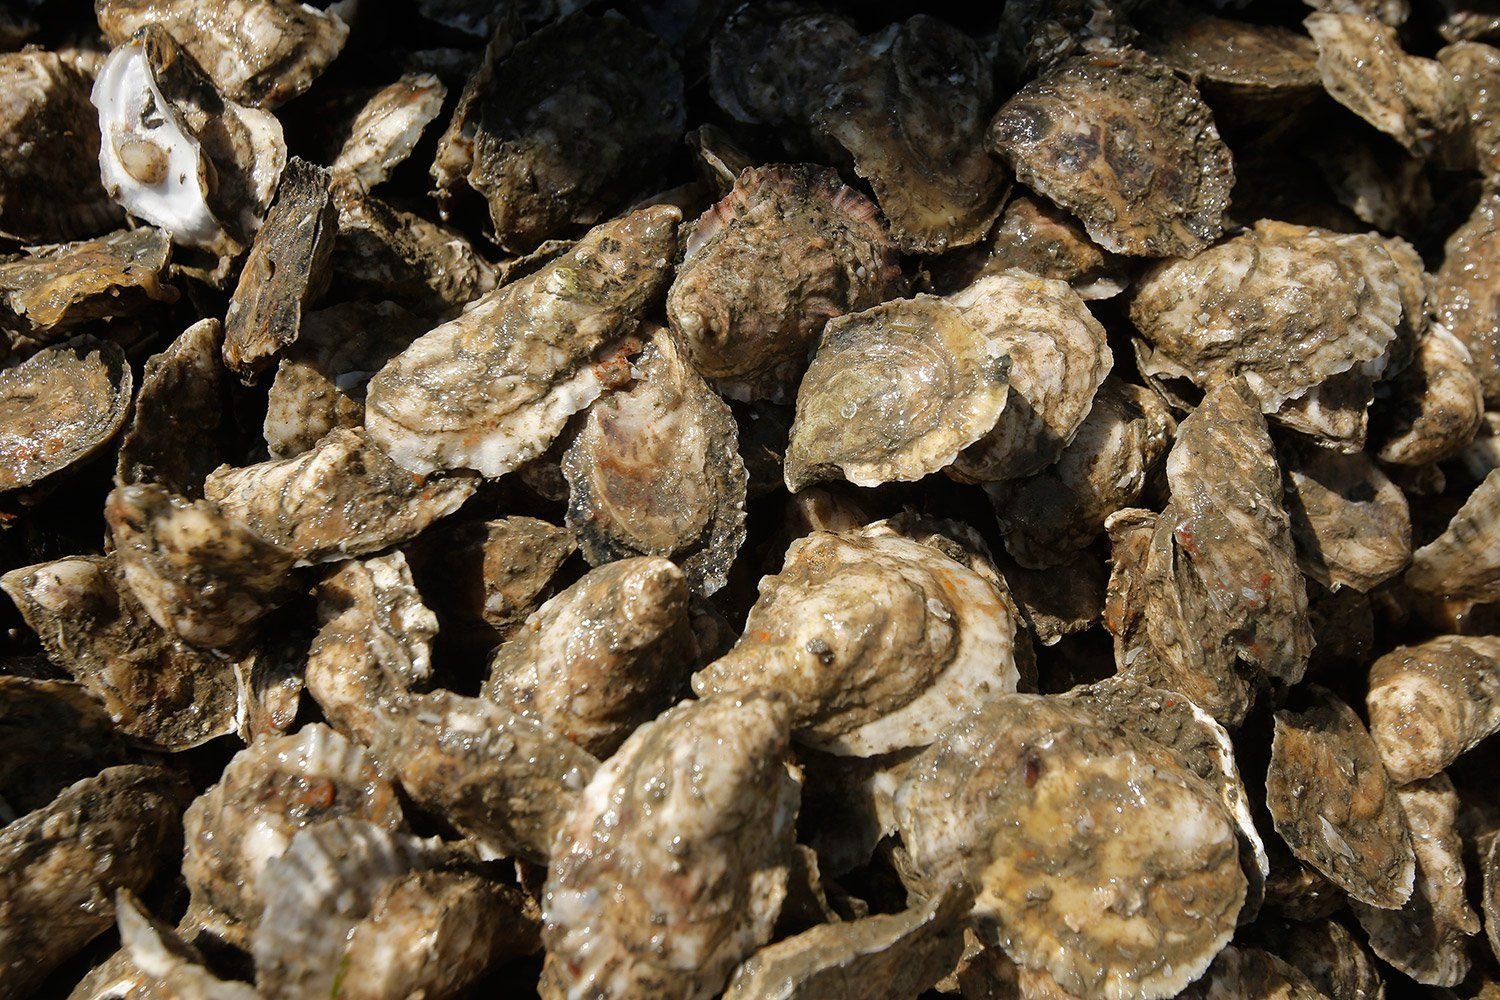 Oysters can truly help save the if we would only